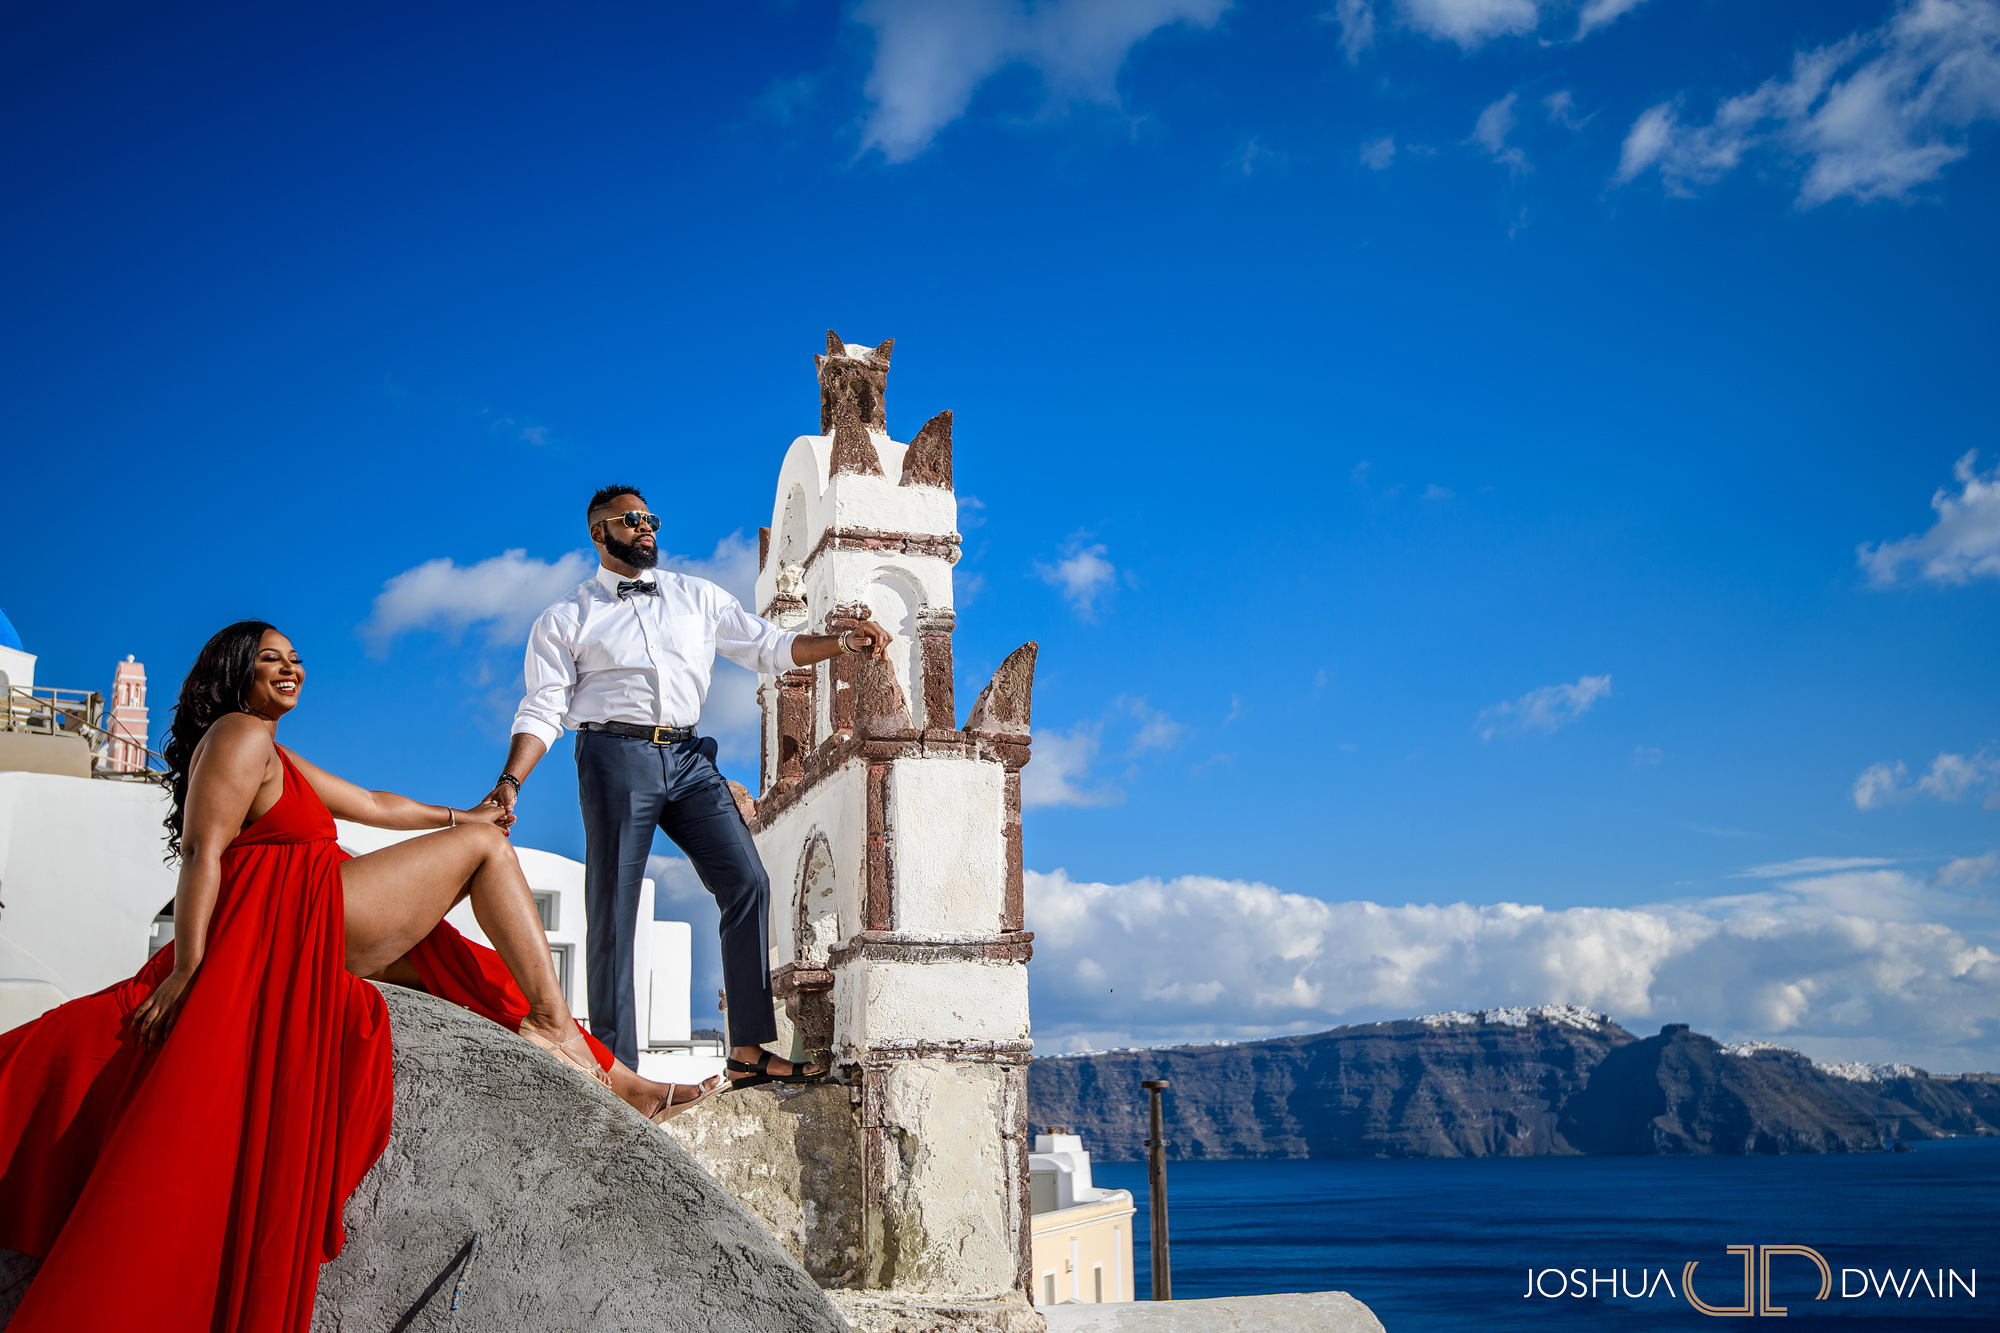 ekene-issac-08-santorini-oia-thira-greece-wedding-engagement-photos-african-american-destination-photographer-joshua-dwain